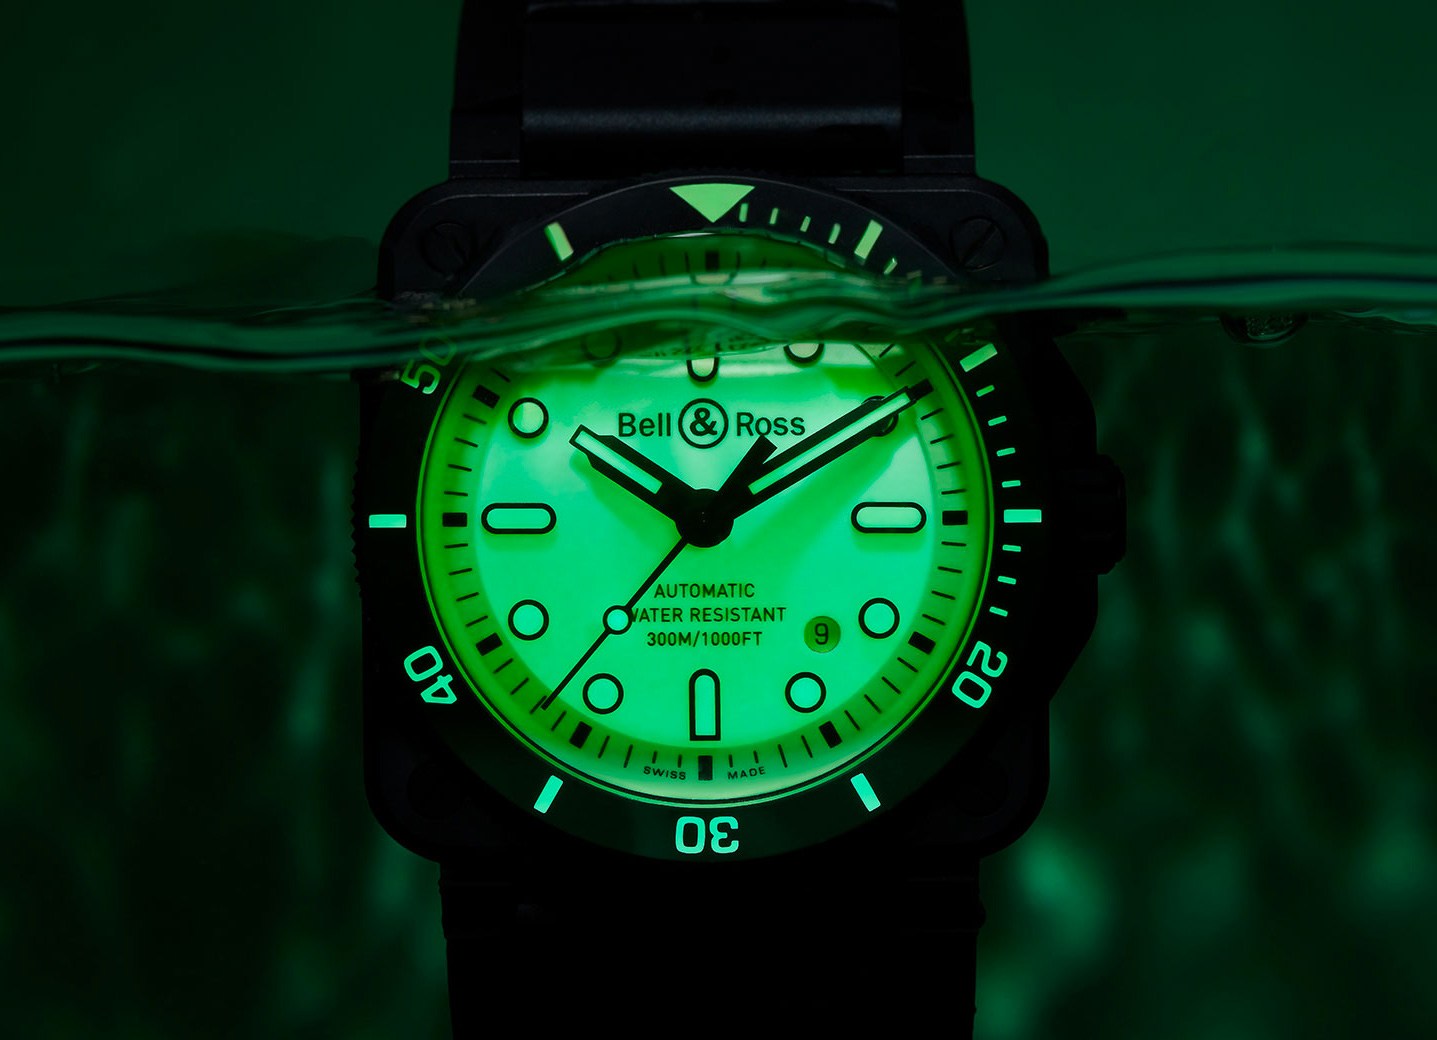 Bell & Ross Light Up the Deep with Luminescent Diver at werd.com